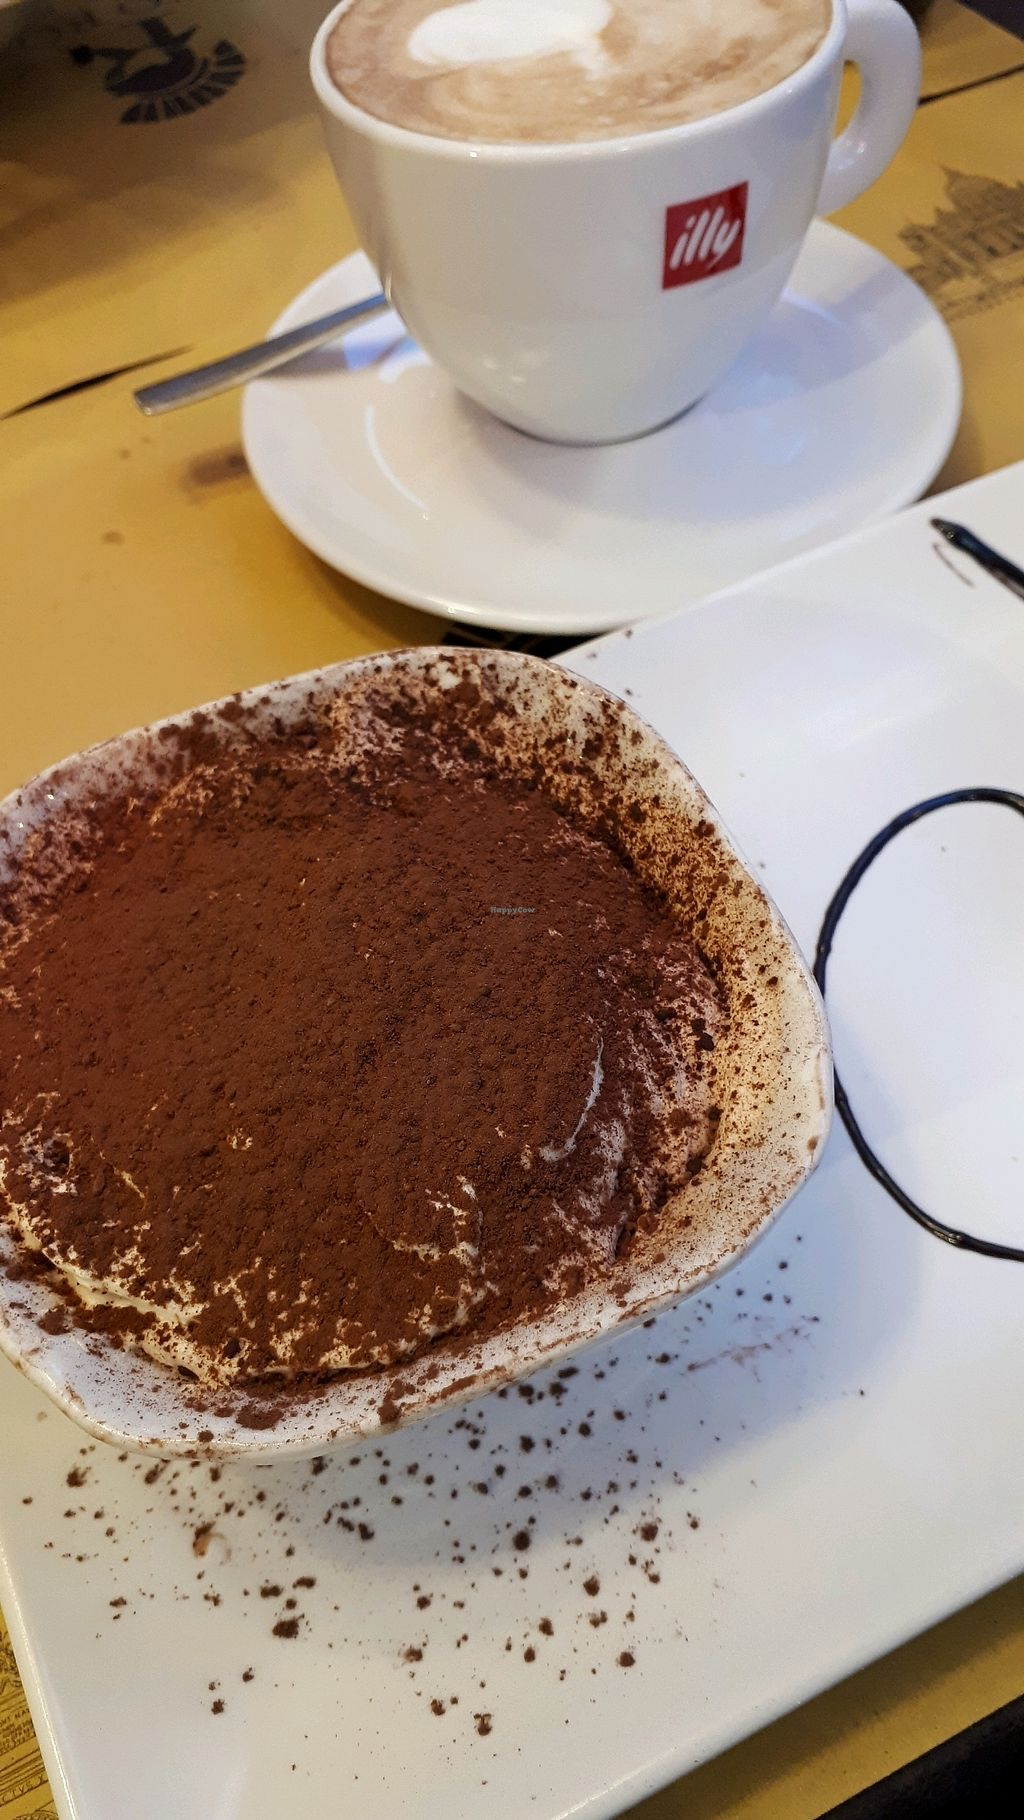 "Photo of Rifugio Romano  by <a href=""/members/profile/AndreaMM"">AndreaMM</a> <br/>Vegan tiramisu with soy latte <br/> March 29, 2018  - <a href='/contact/abuse/image/72423/377991'>Report</a>"